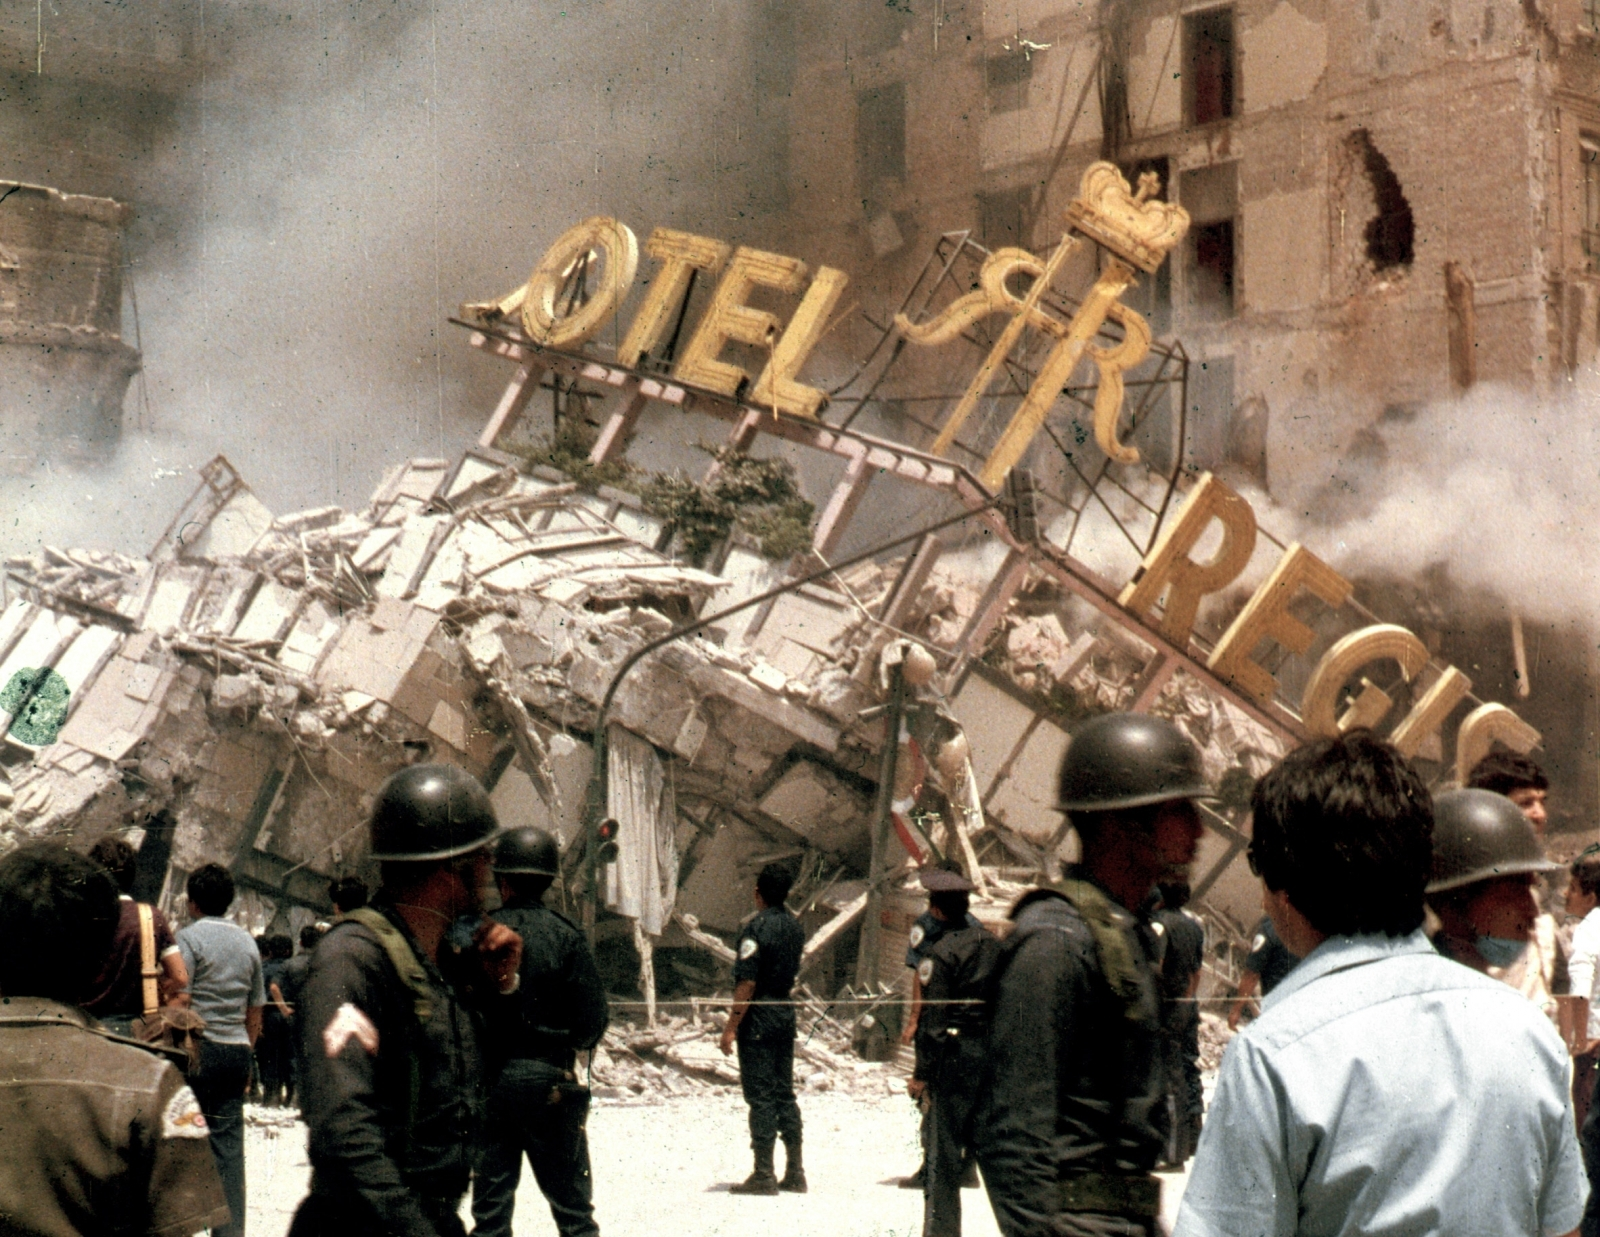 the mexico city earthquake of 1985 On the anniversary of its catastrophic 1985 earthquake, mexico city has been hit by another powerful seismic event no reports of casualties have been reported, but videos posted to social media suggest that damage is widespread.